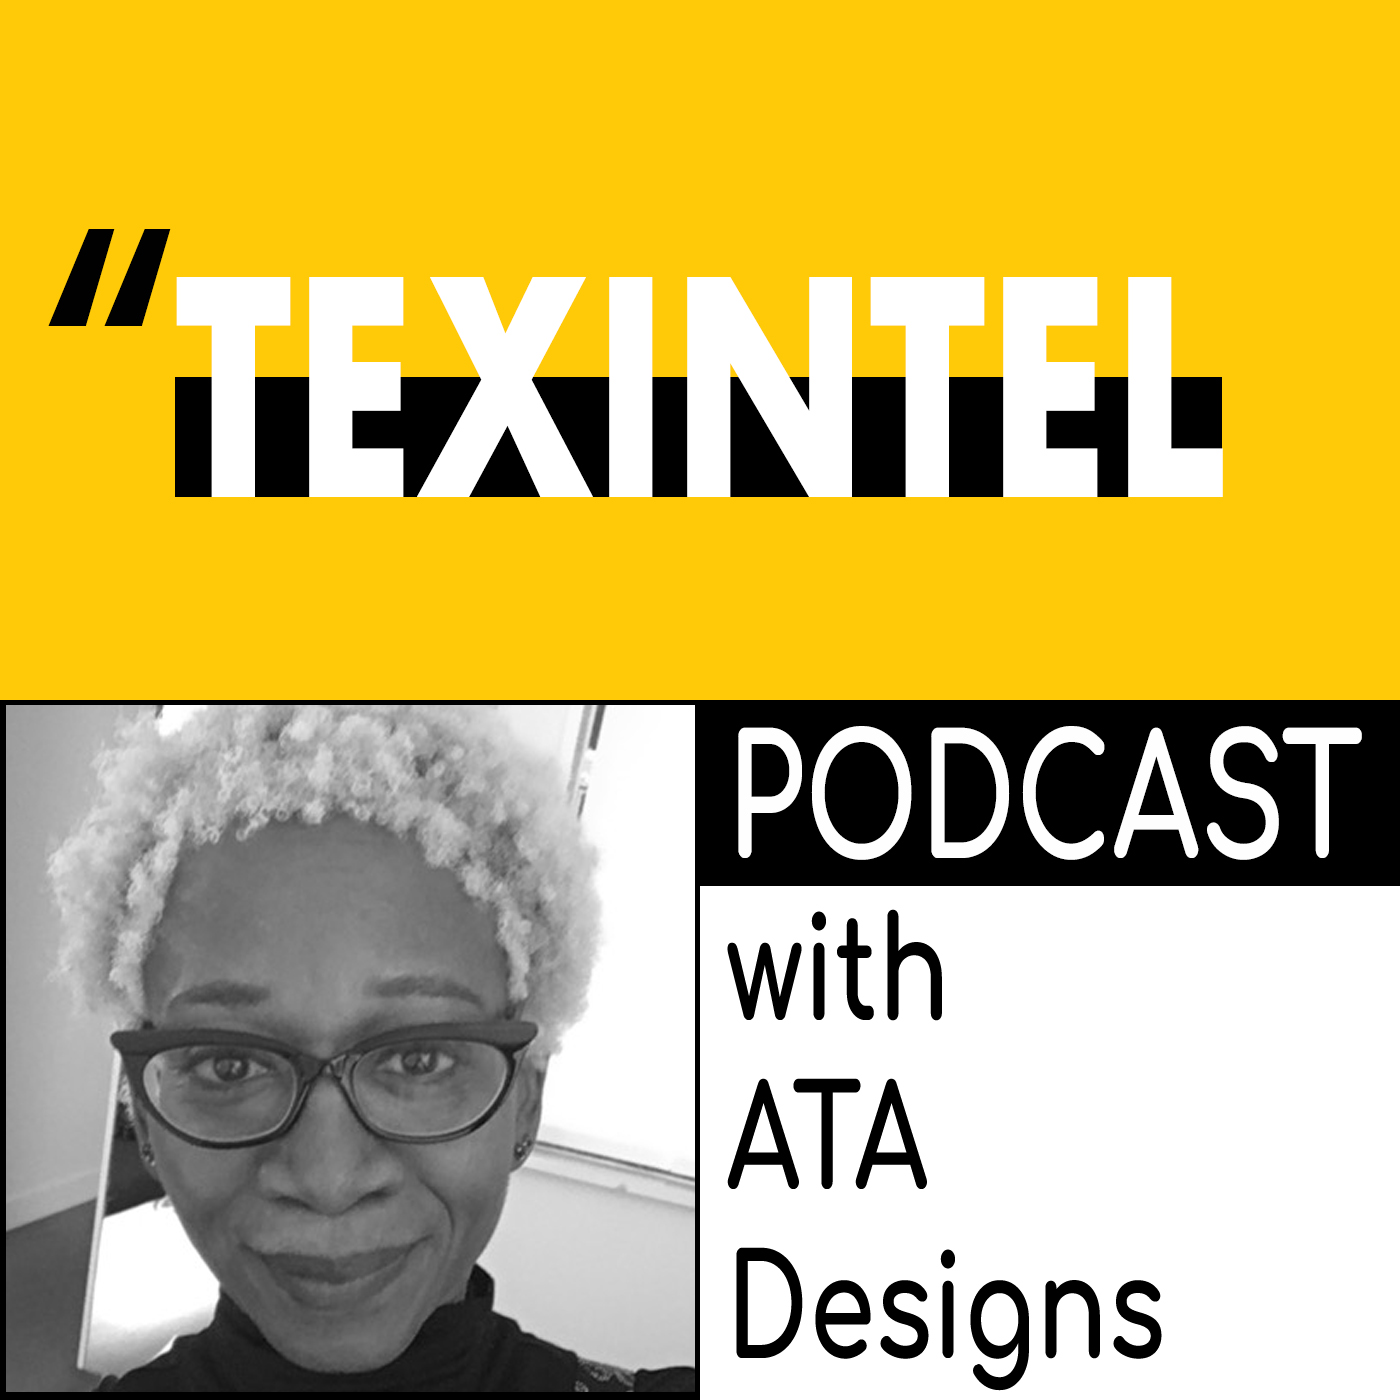 TEXINTEL PODCAST ATA DESIGNS.jpg